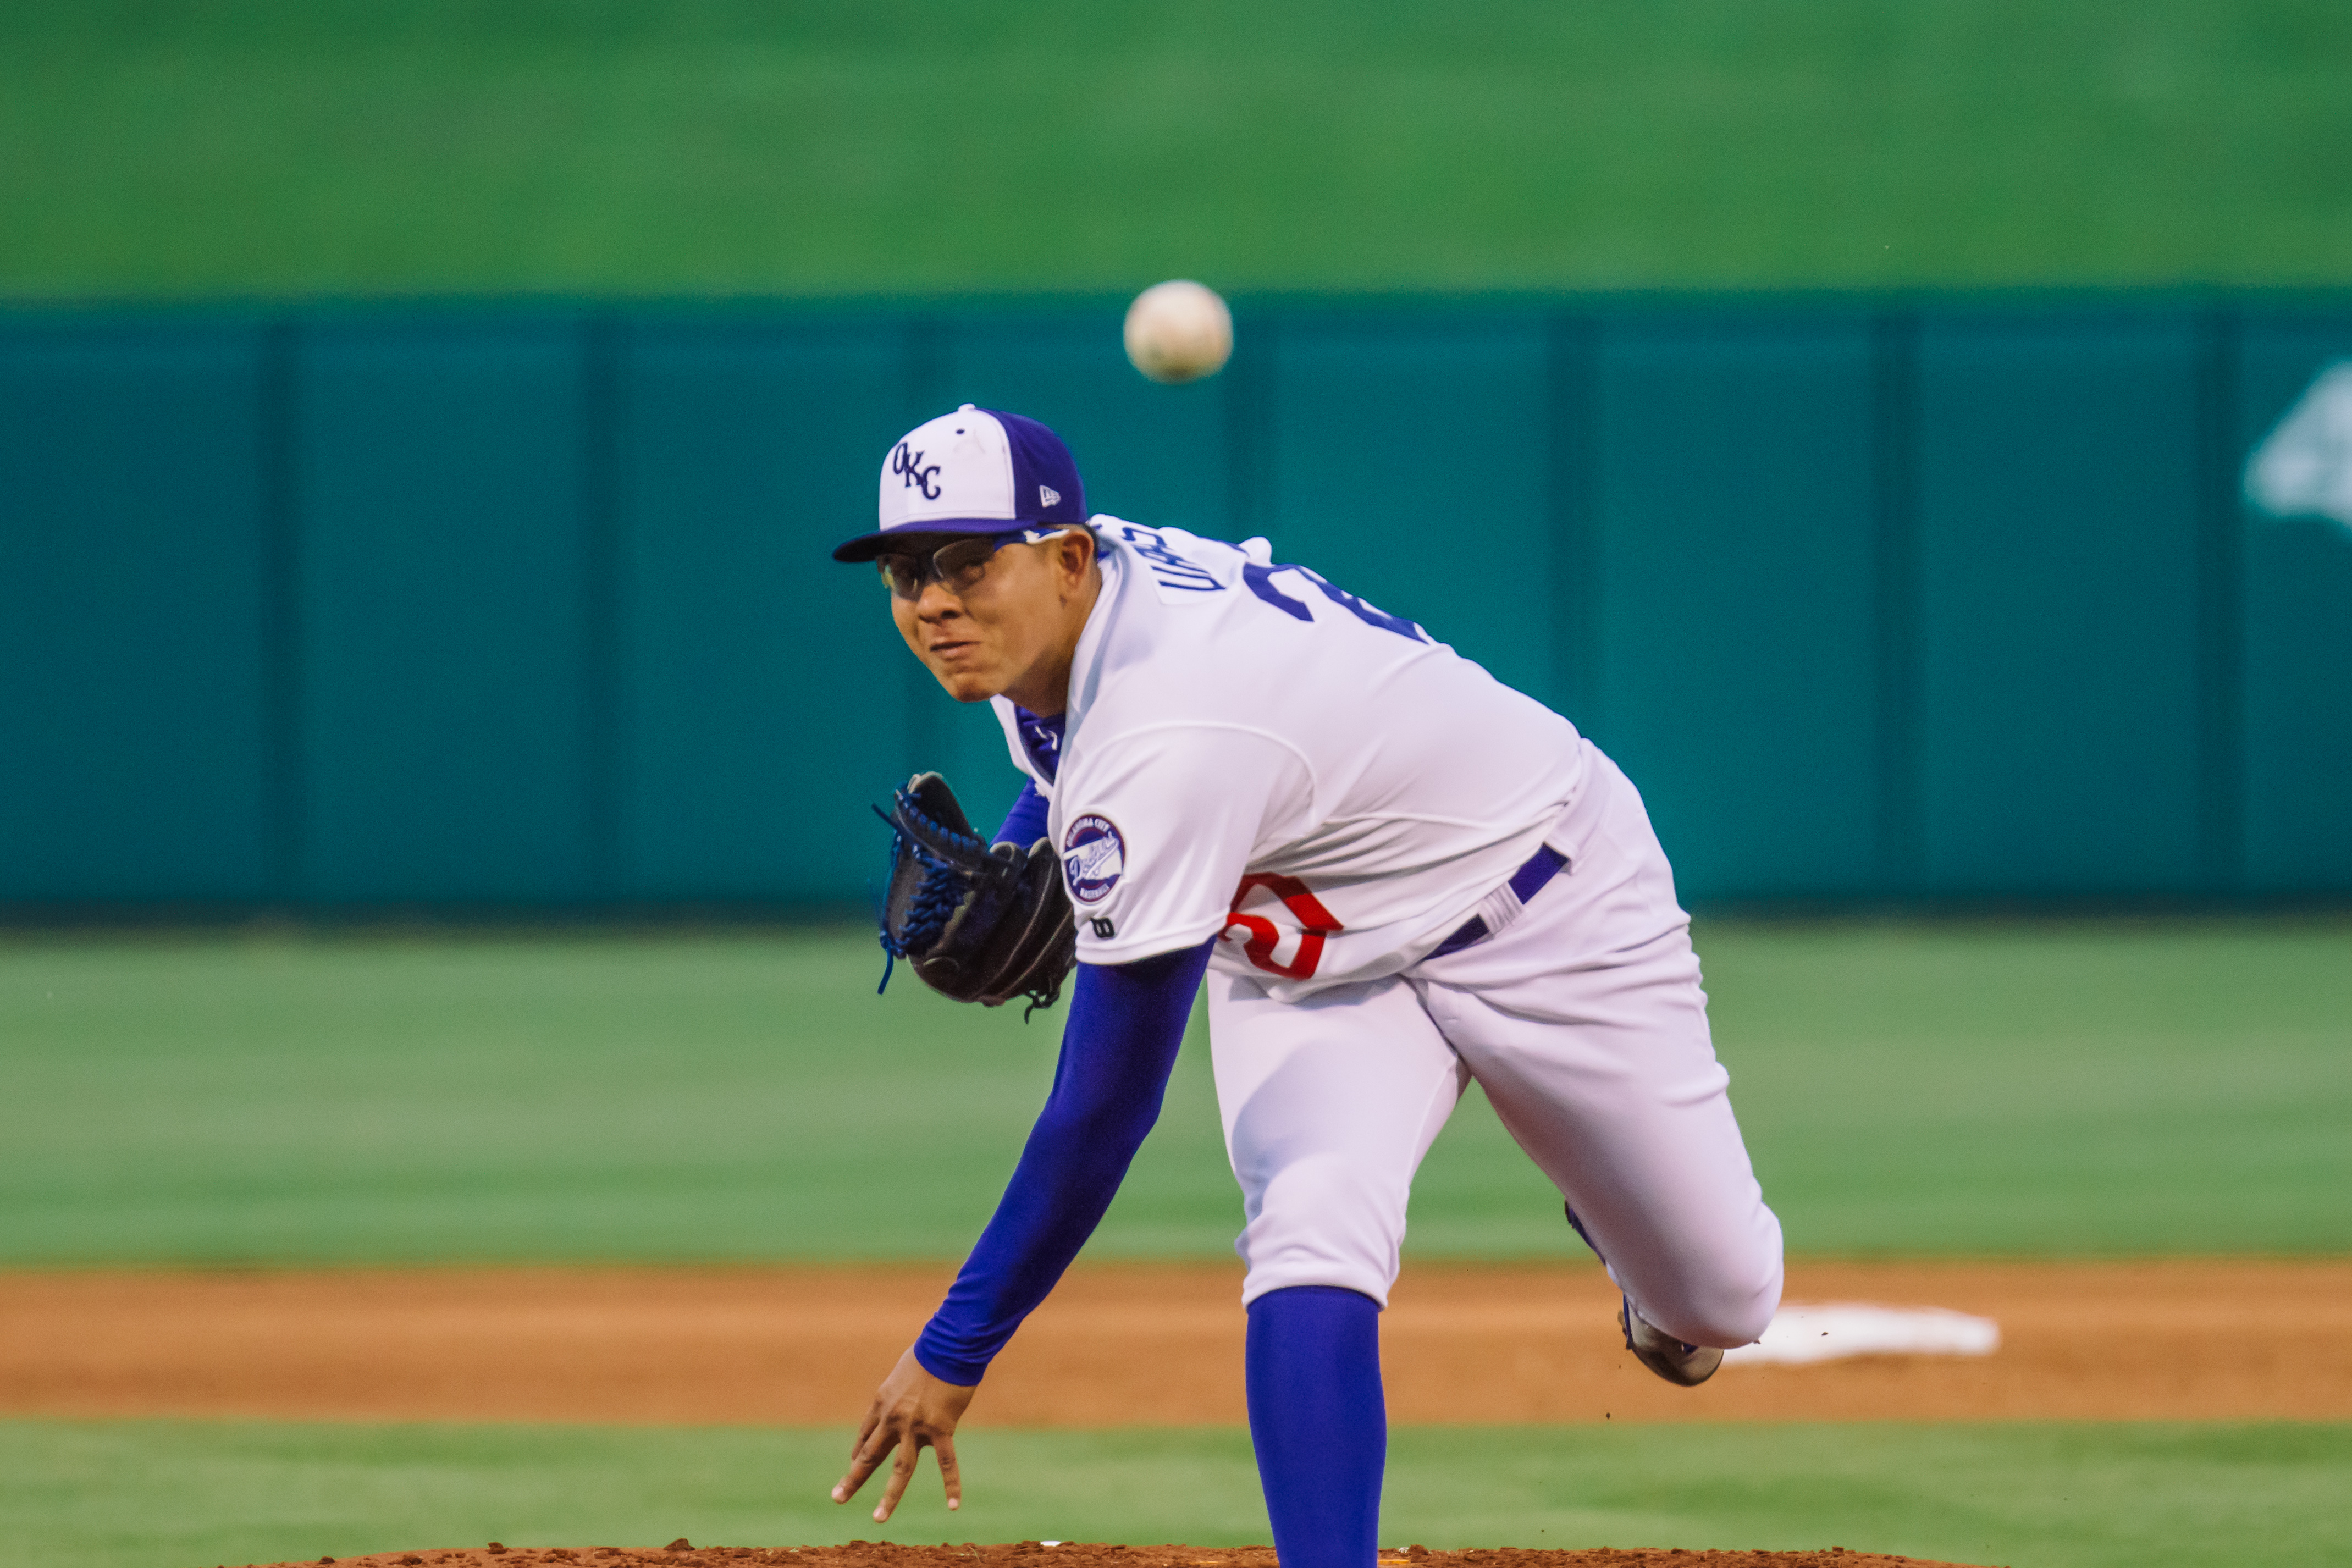 Julio Urias was so dominant on Wednesday, he pitched a season-high six innings, all without allowing a hit.